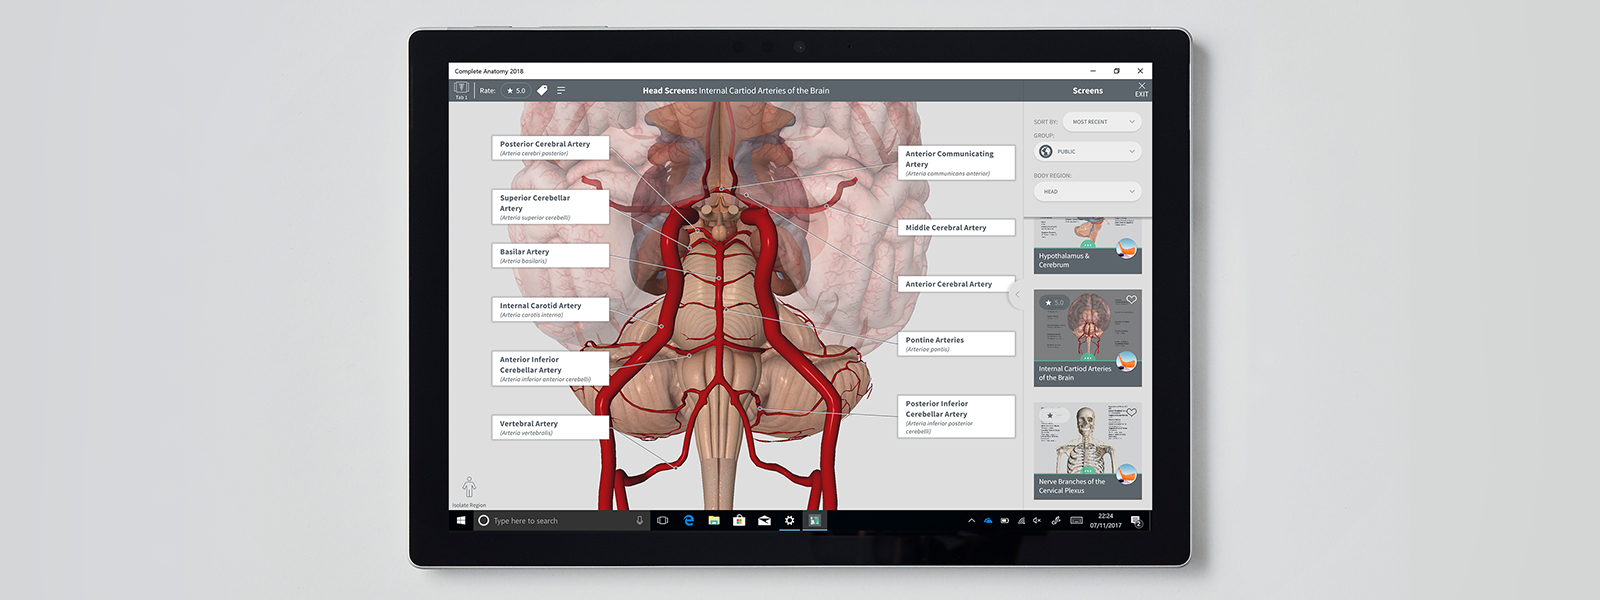 Software showing human anatomy on a Surface device